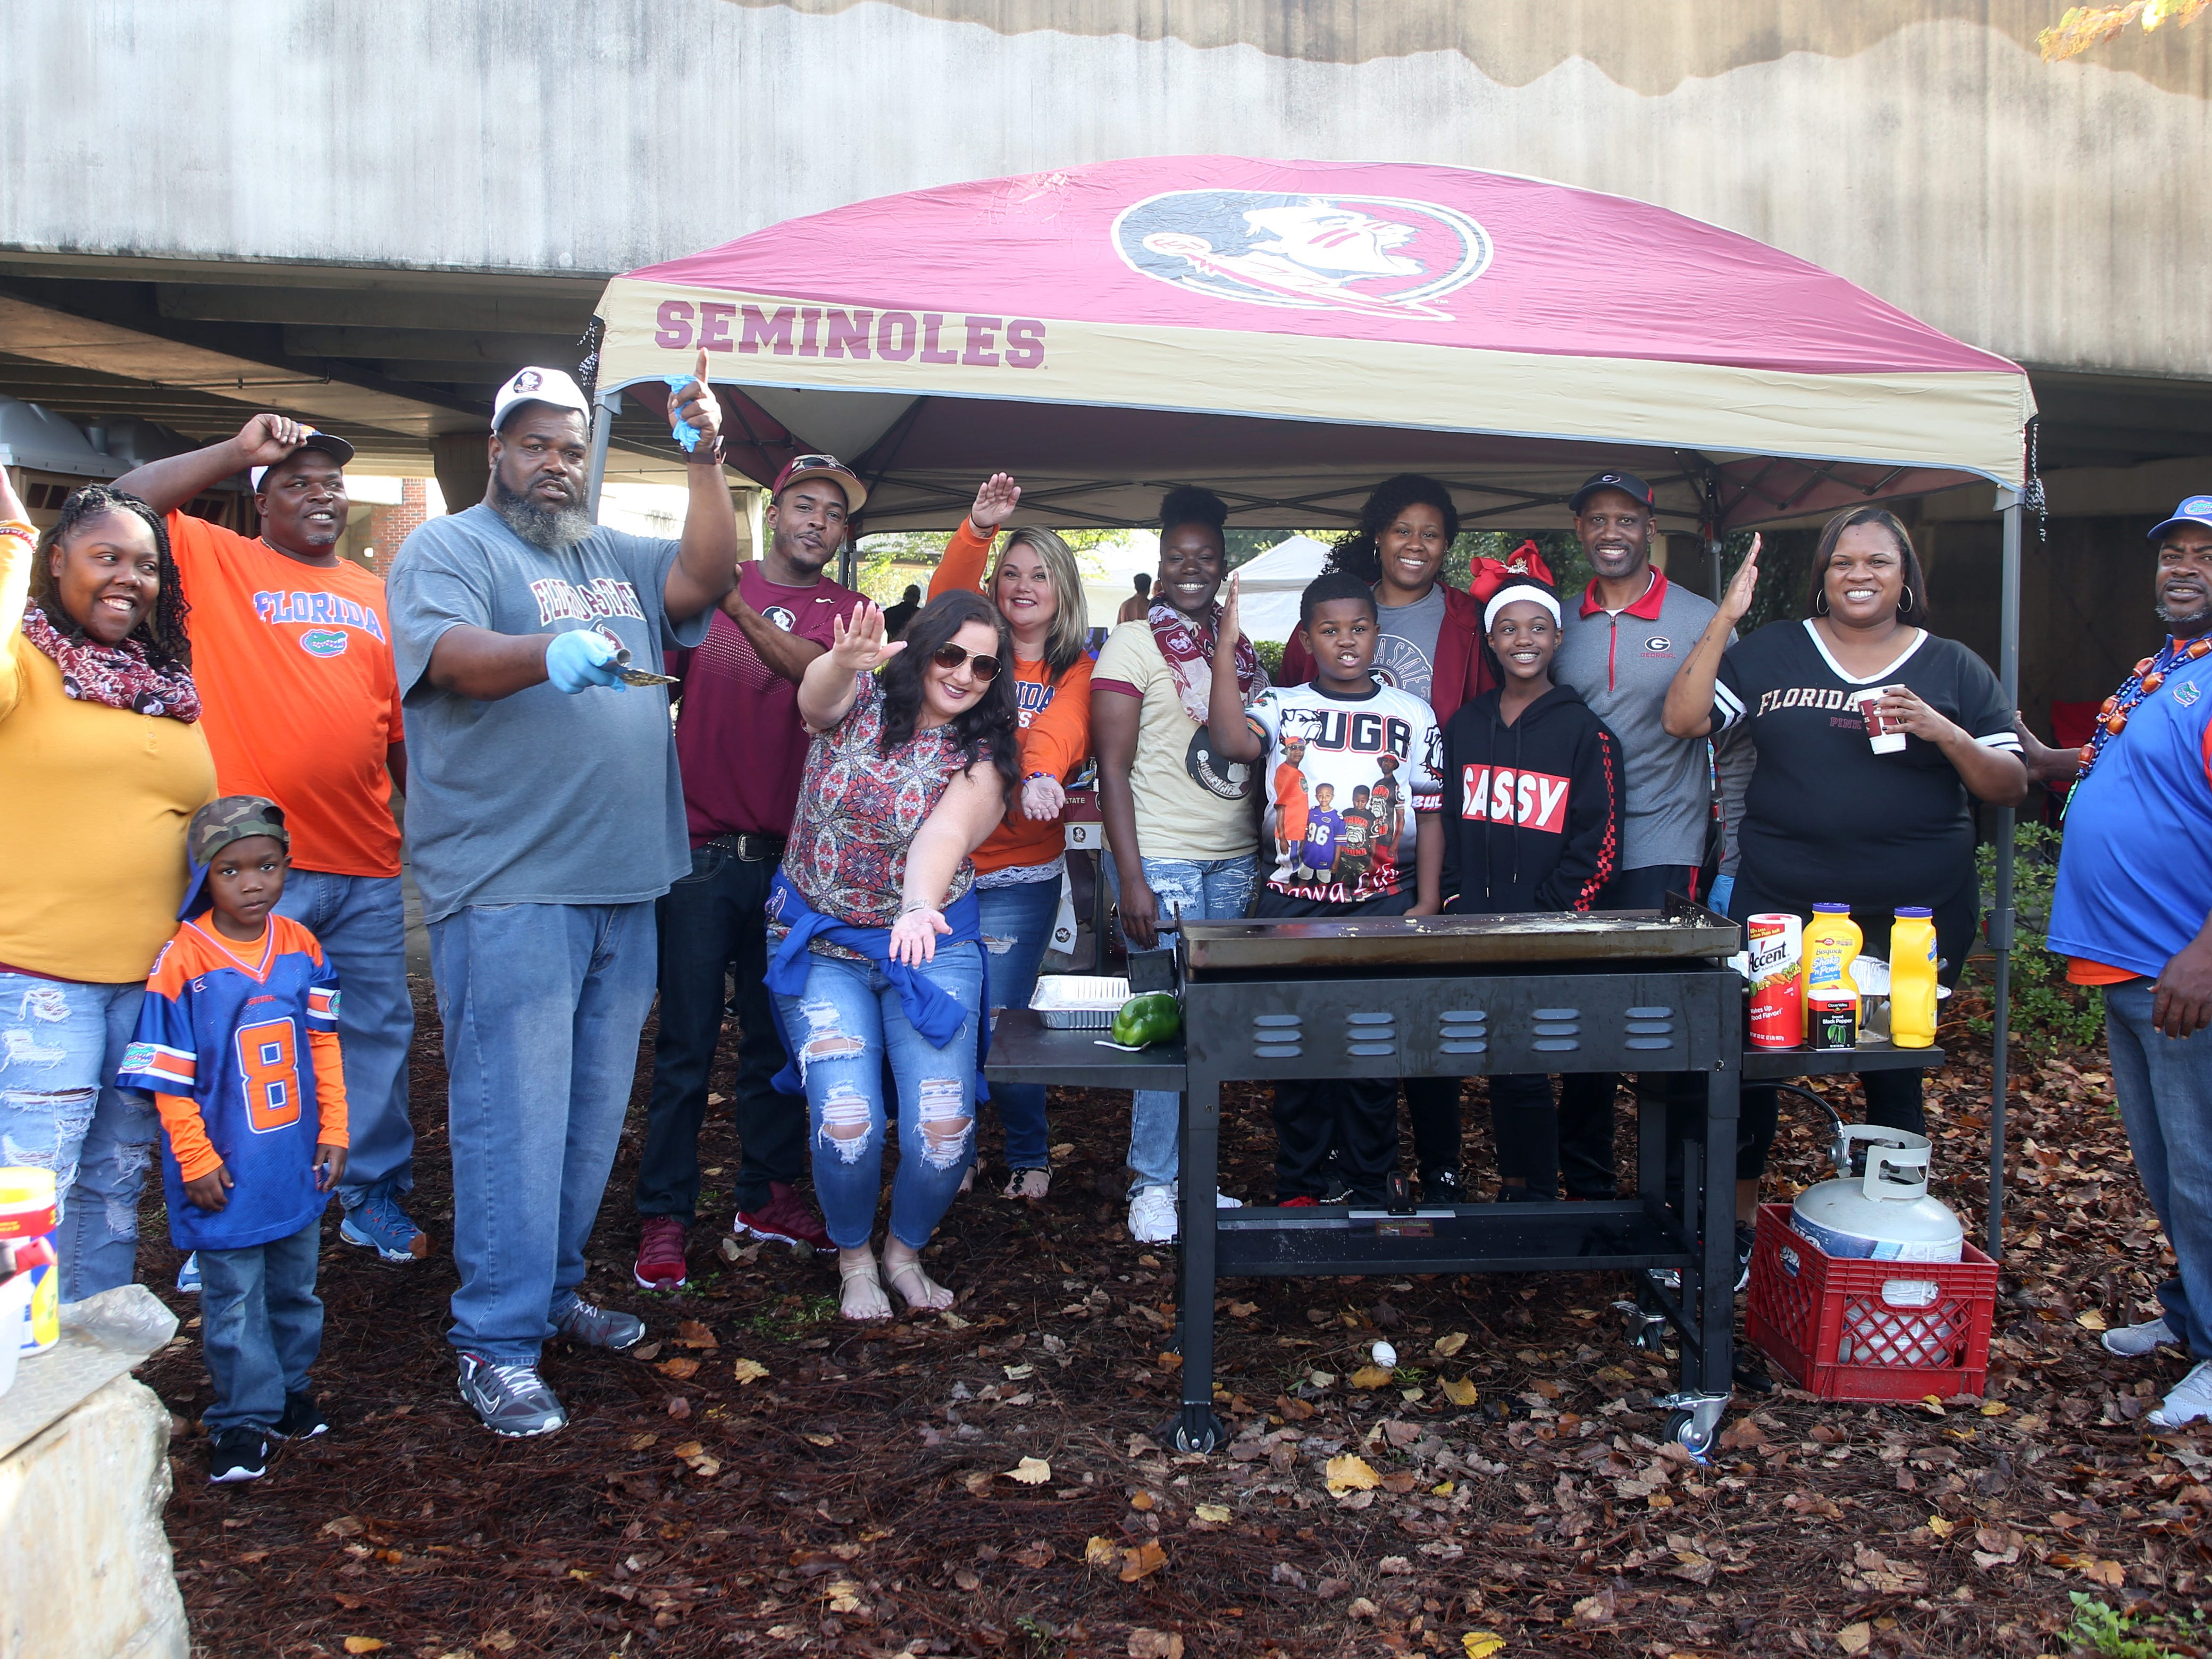 Gator and Seminole fans tailgate together before the big rivalry game between the Florida State Seminoles and the Florida Gators, Saturday, Nov. 24, 2018.